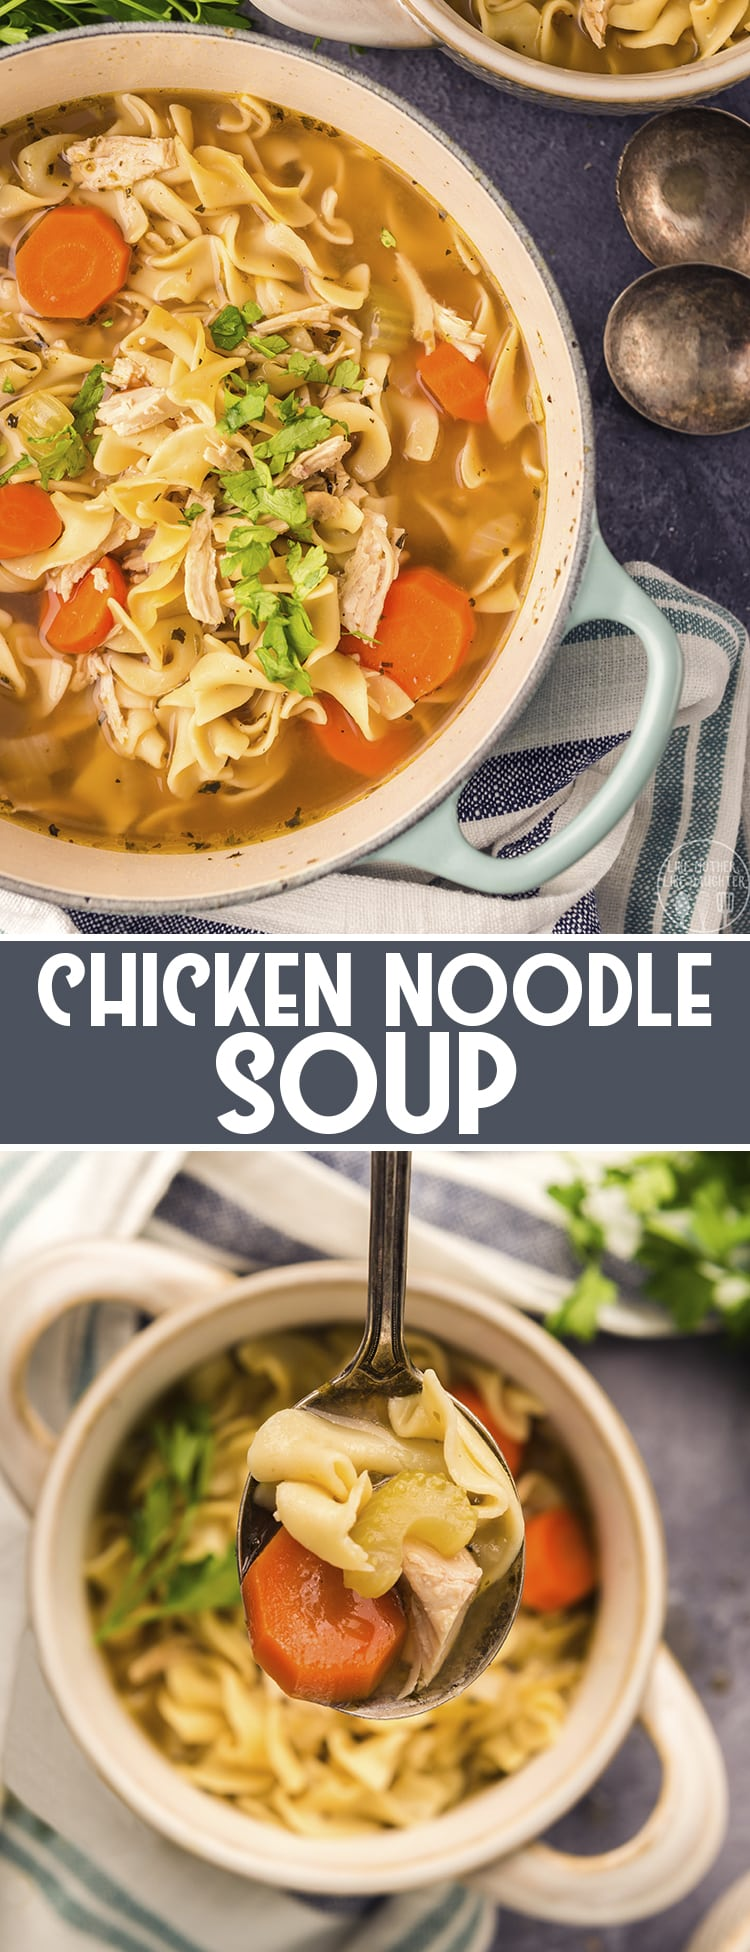 This chicken noodle soup is packed full of fresh and healthy ingredients. It's so easy to make, and has so much delicious flavor. It's the perfect bowl of comfort!